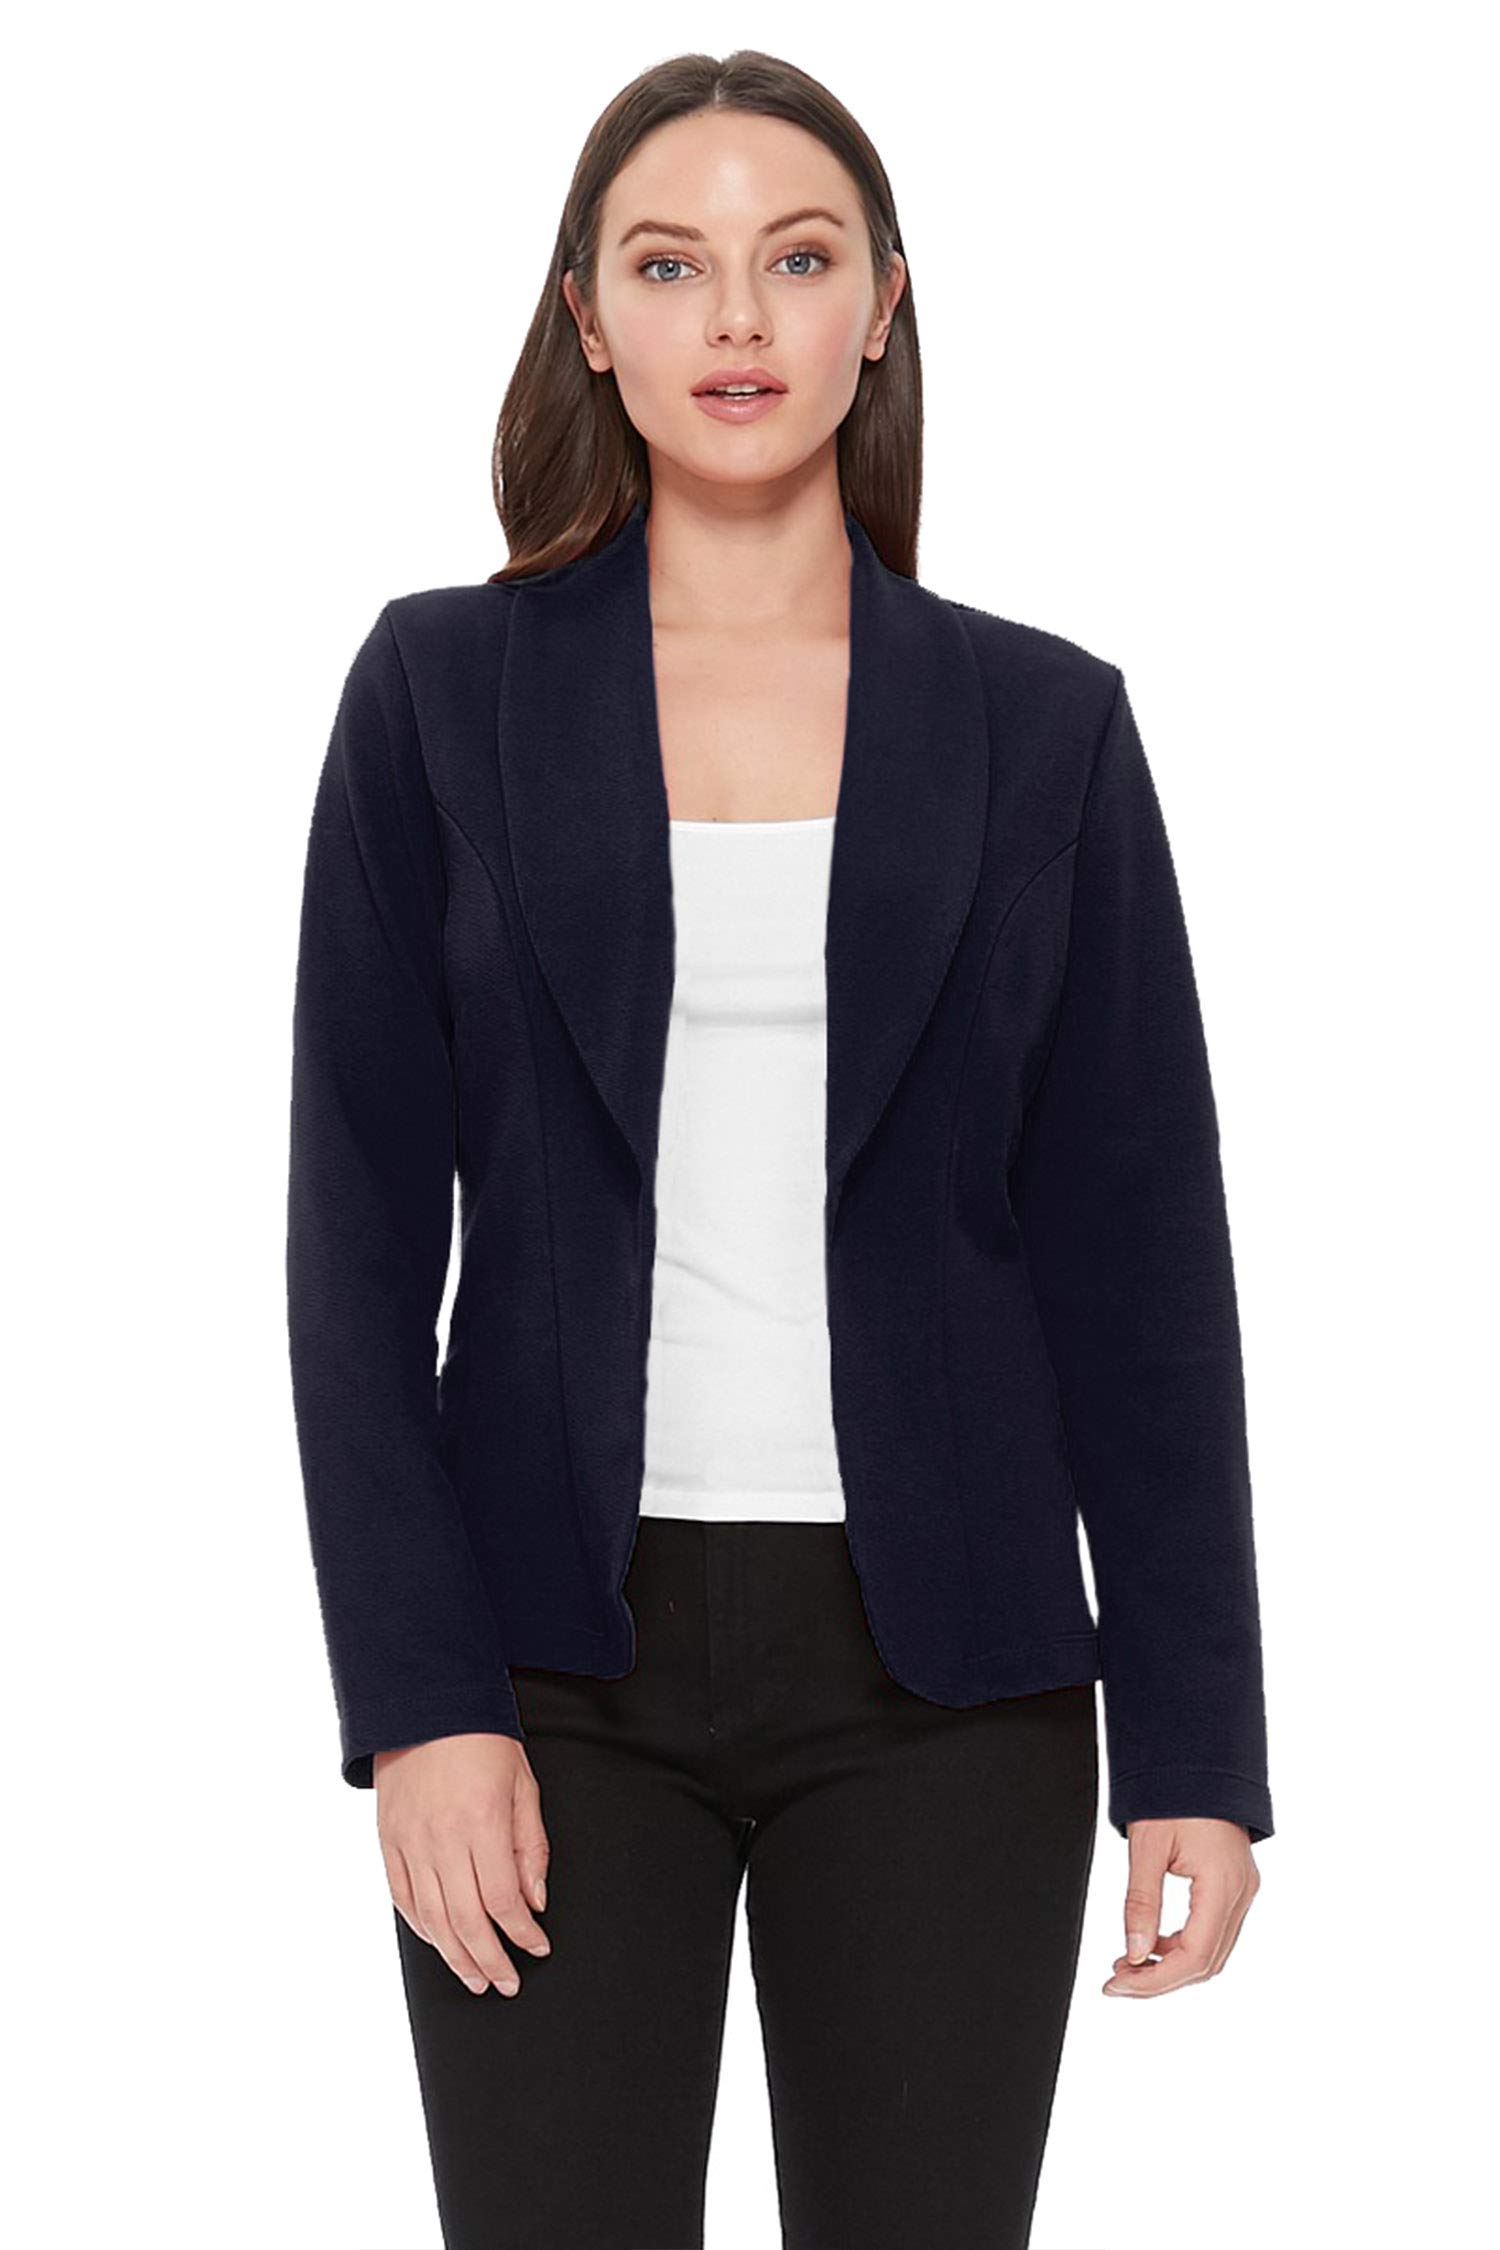 Women's Solid Basic Casual Long Sleeves Work Office Outerwear Blazer Jacket Navy L